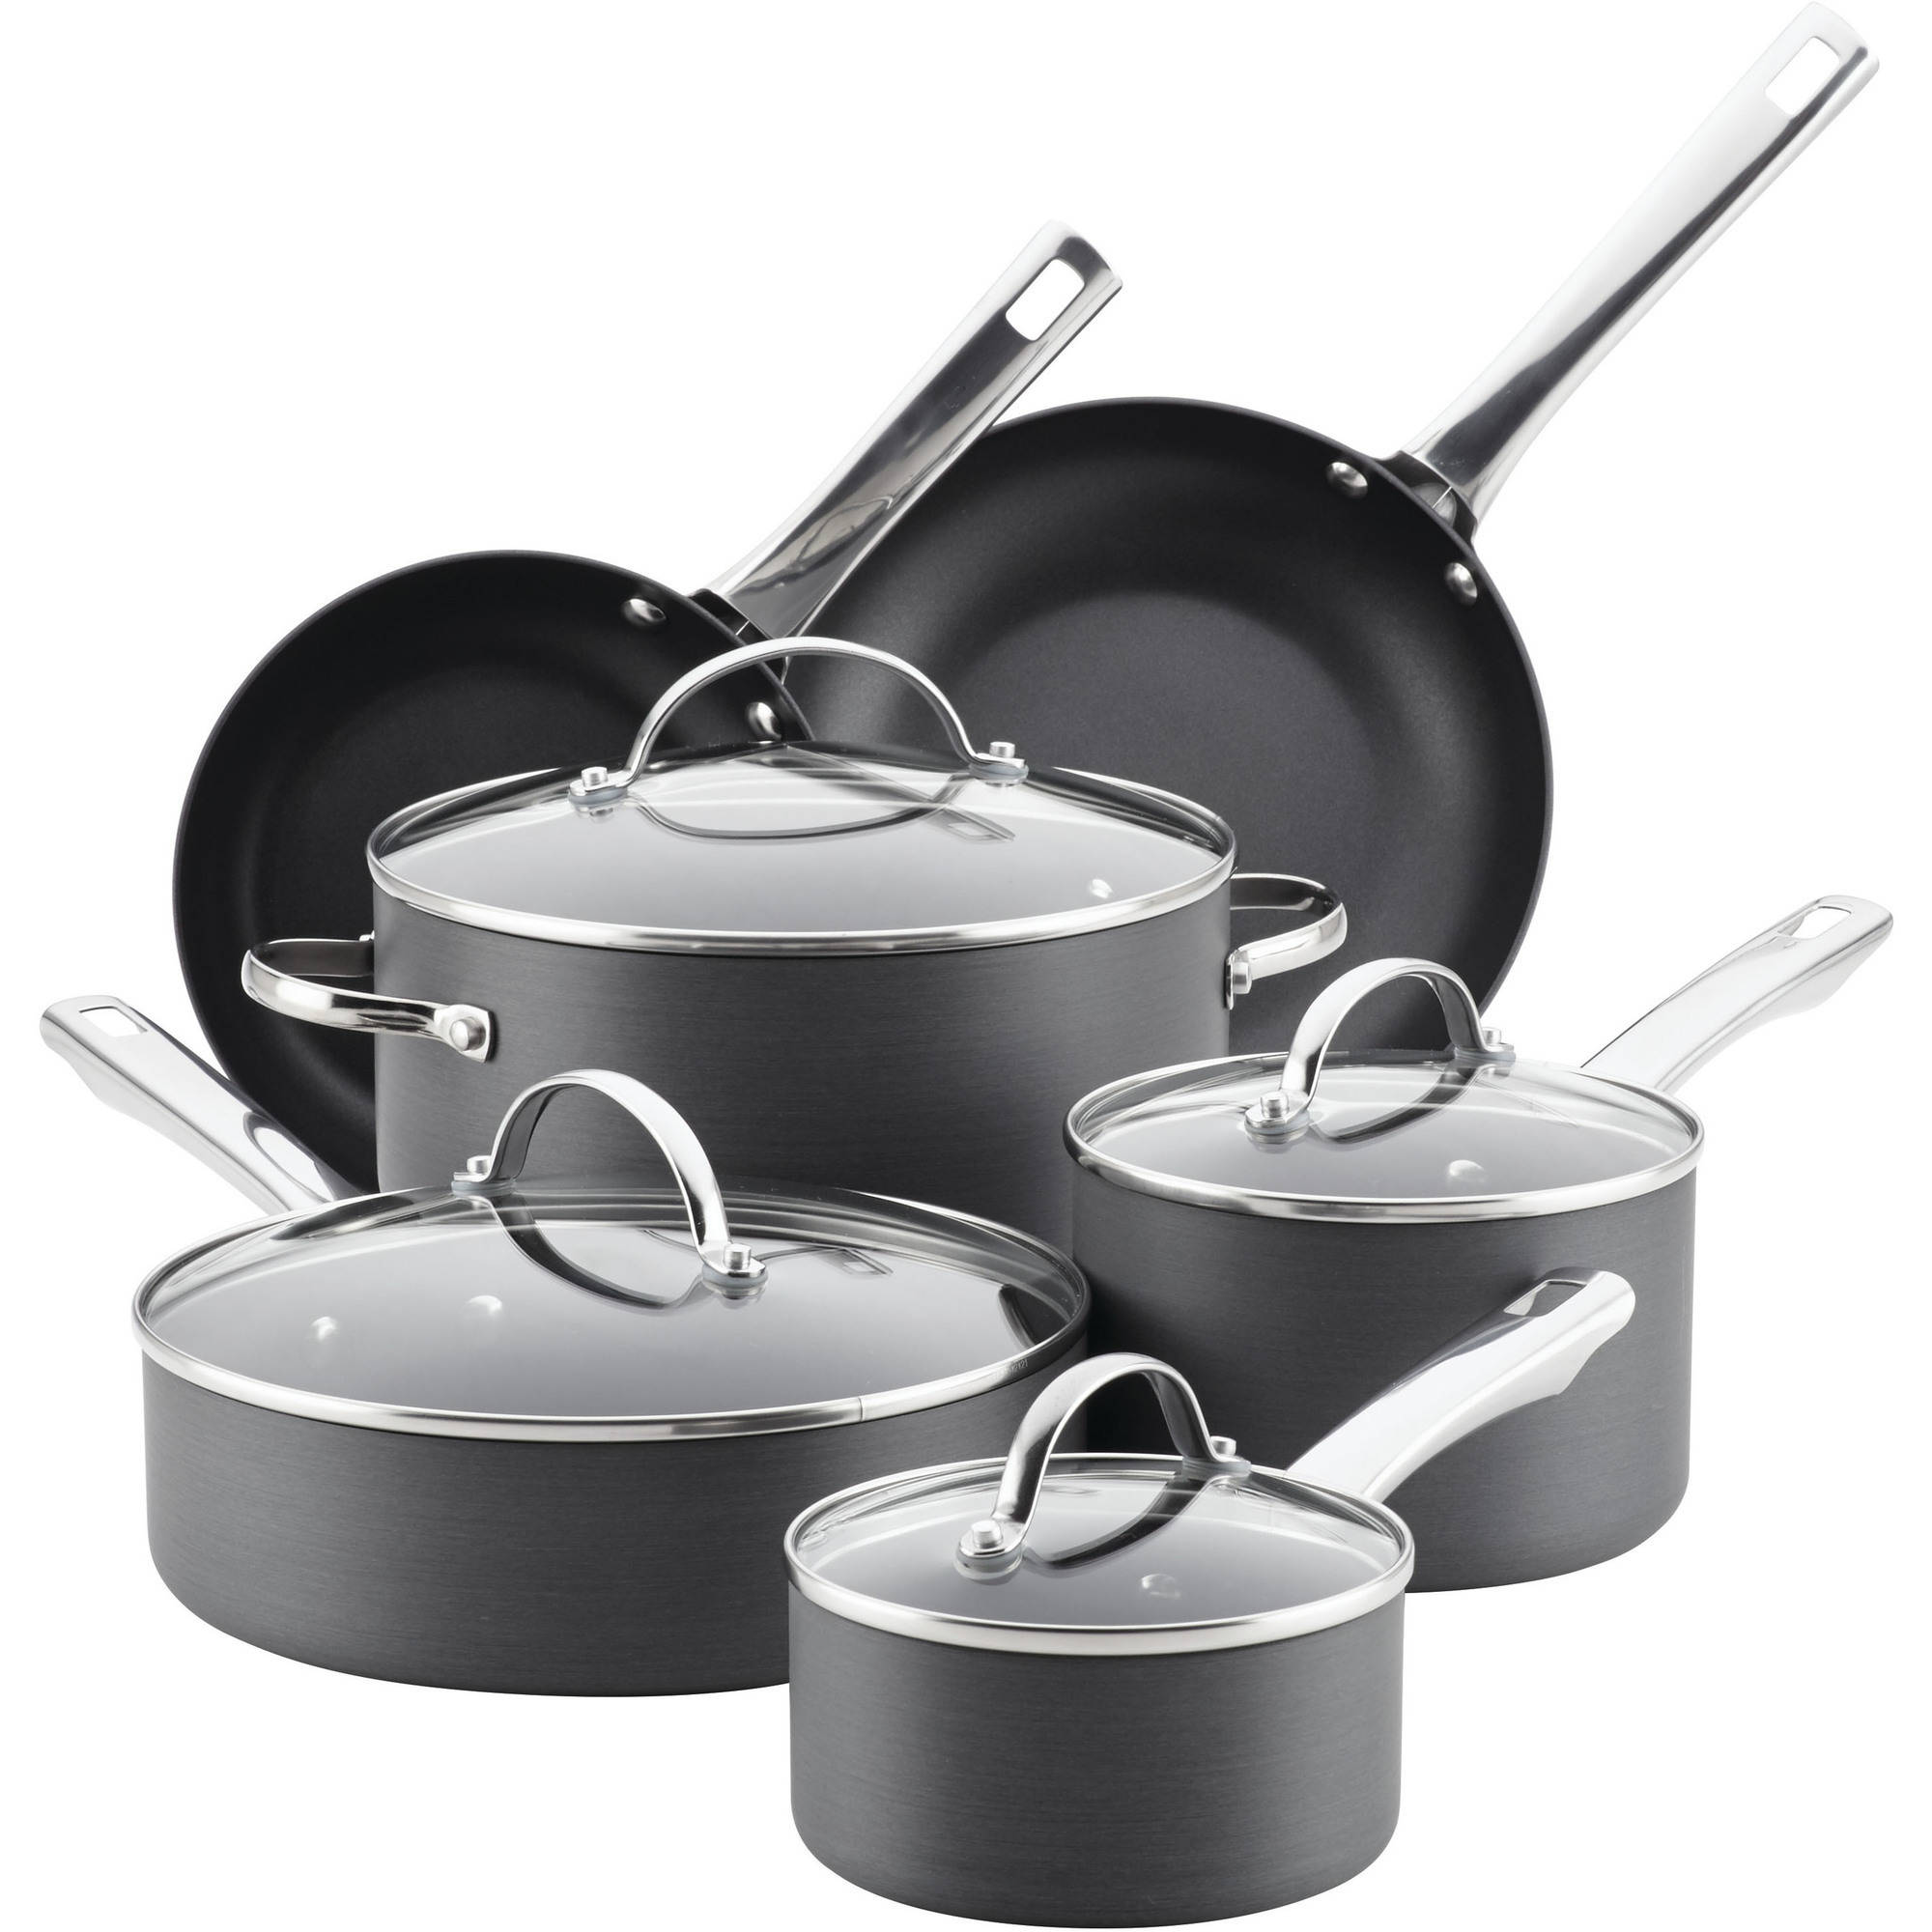 Farberware Hard-Anodized Aluminum Nonstick Cookware Set, 14-Piece, Gray by Meyer Corporation